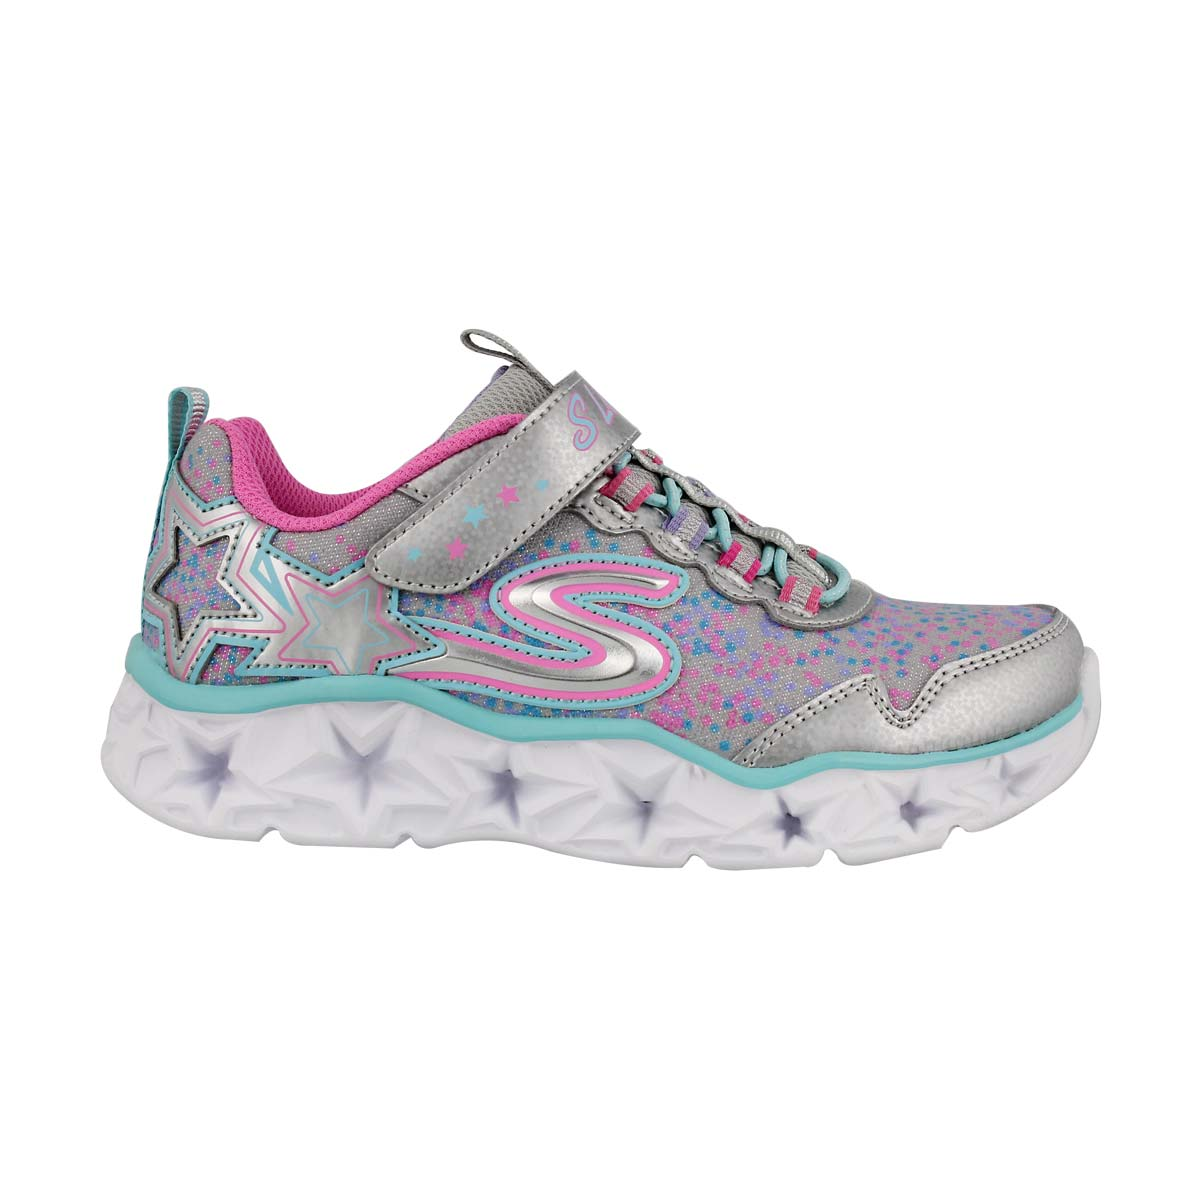 Grls Galaxy Lights slv/mlt light up snkr